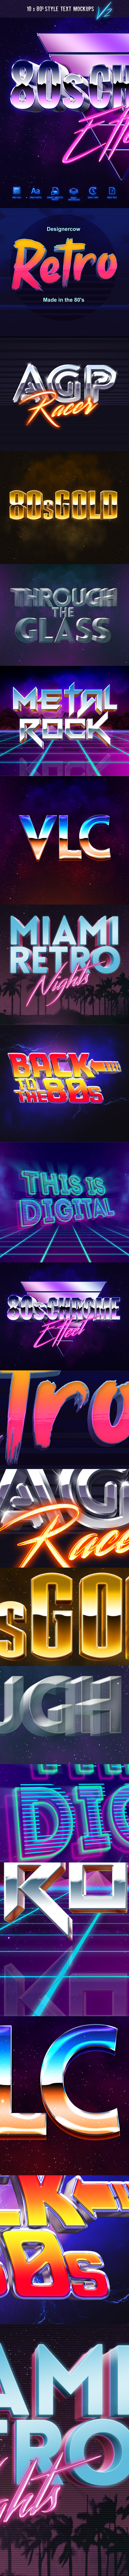 80's Style Text Mockups V2 - Actions Photoshop